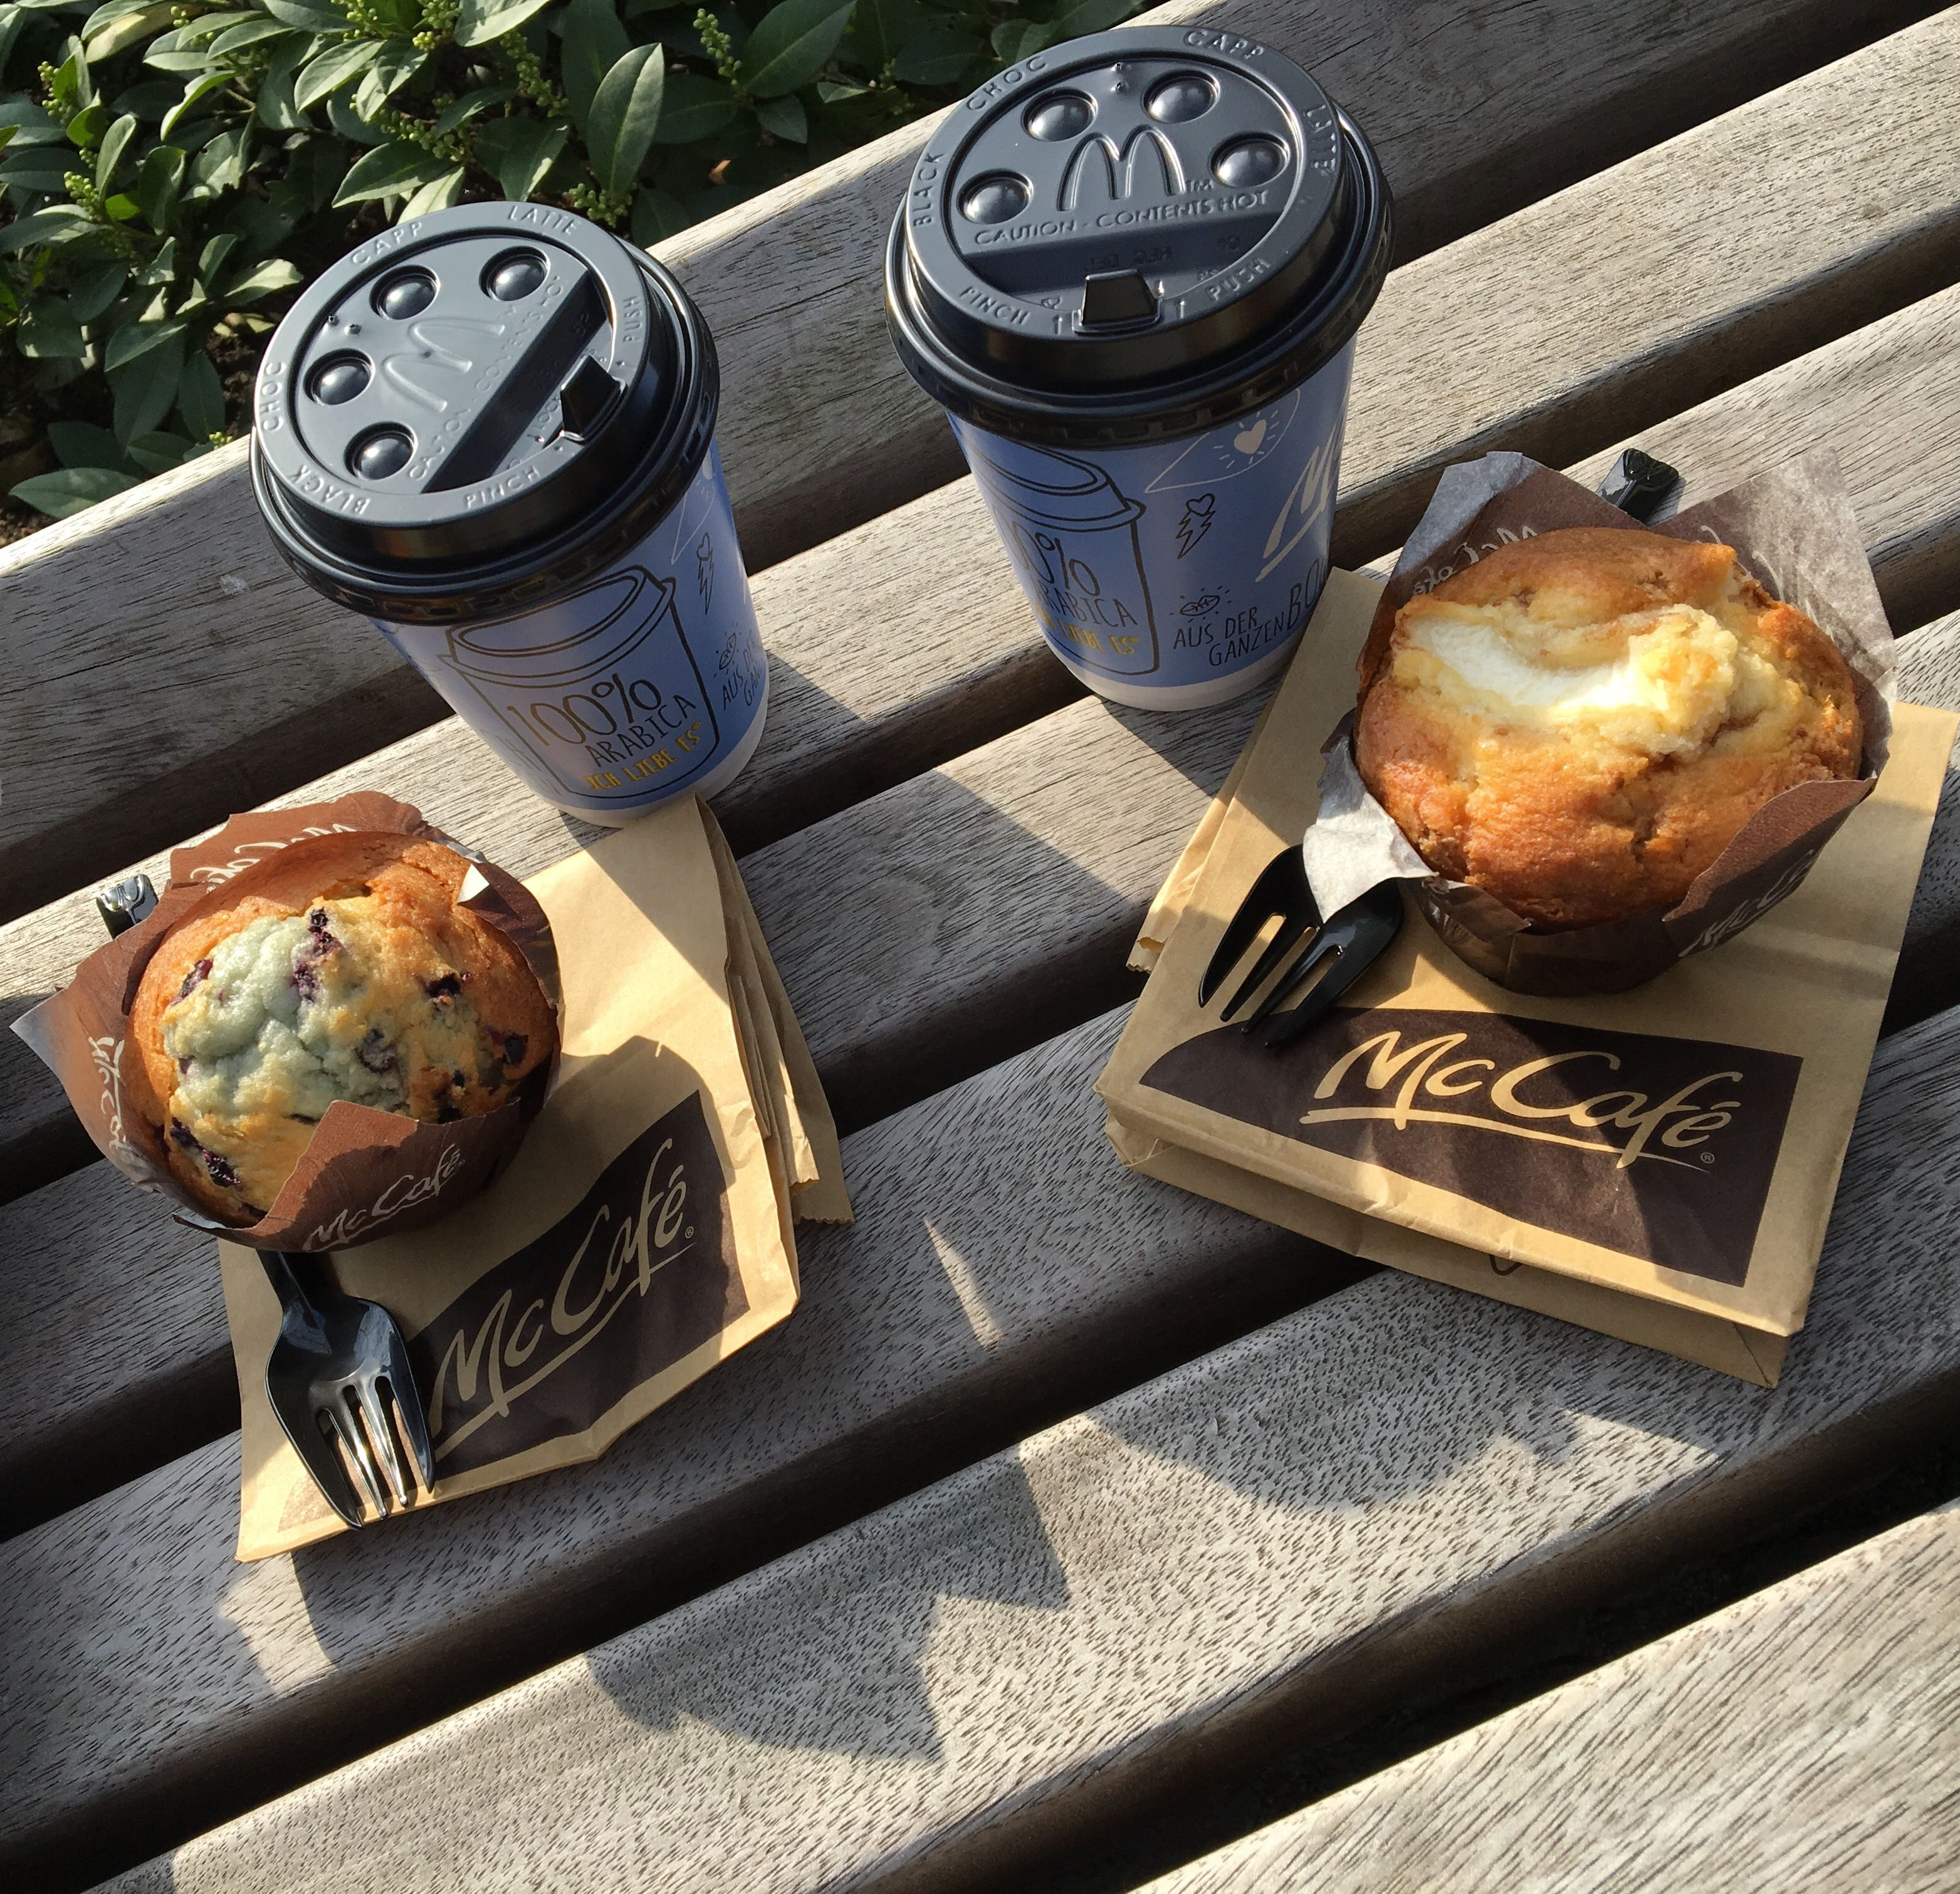 #mccaffe #caffee #mcdonalds #sunny #snack #muffin #recovery #sweets #good